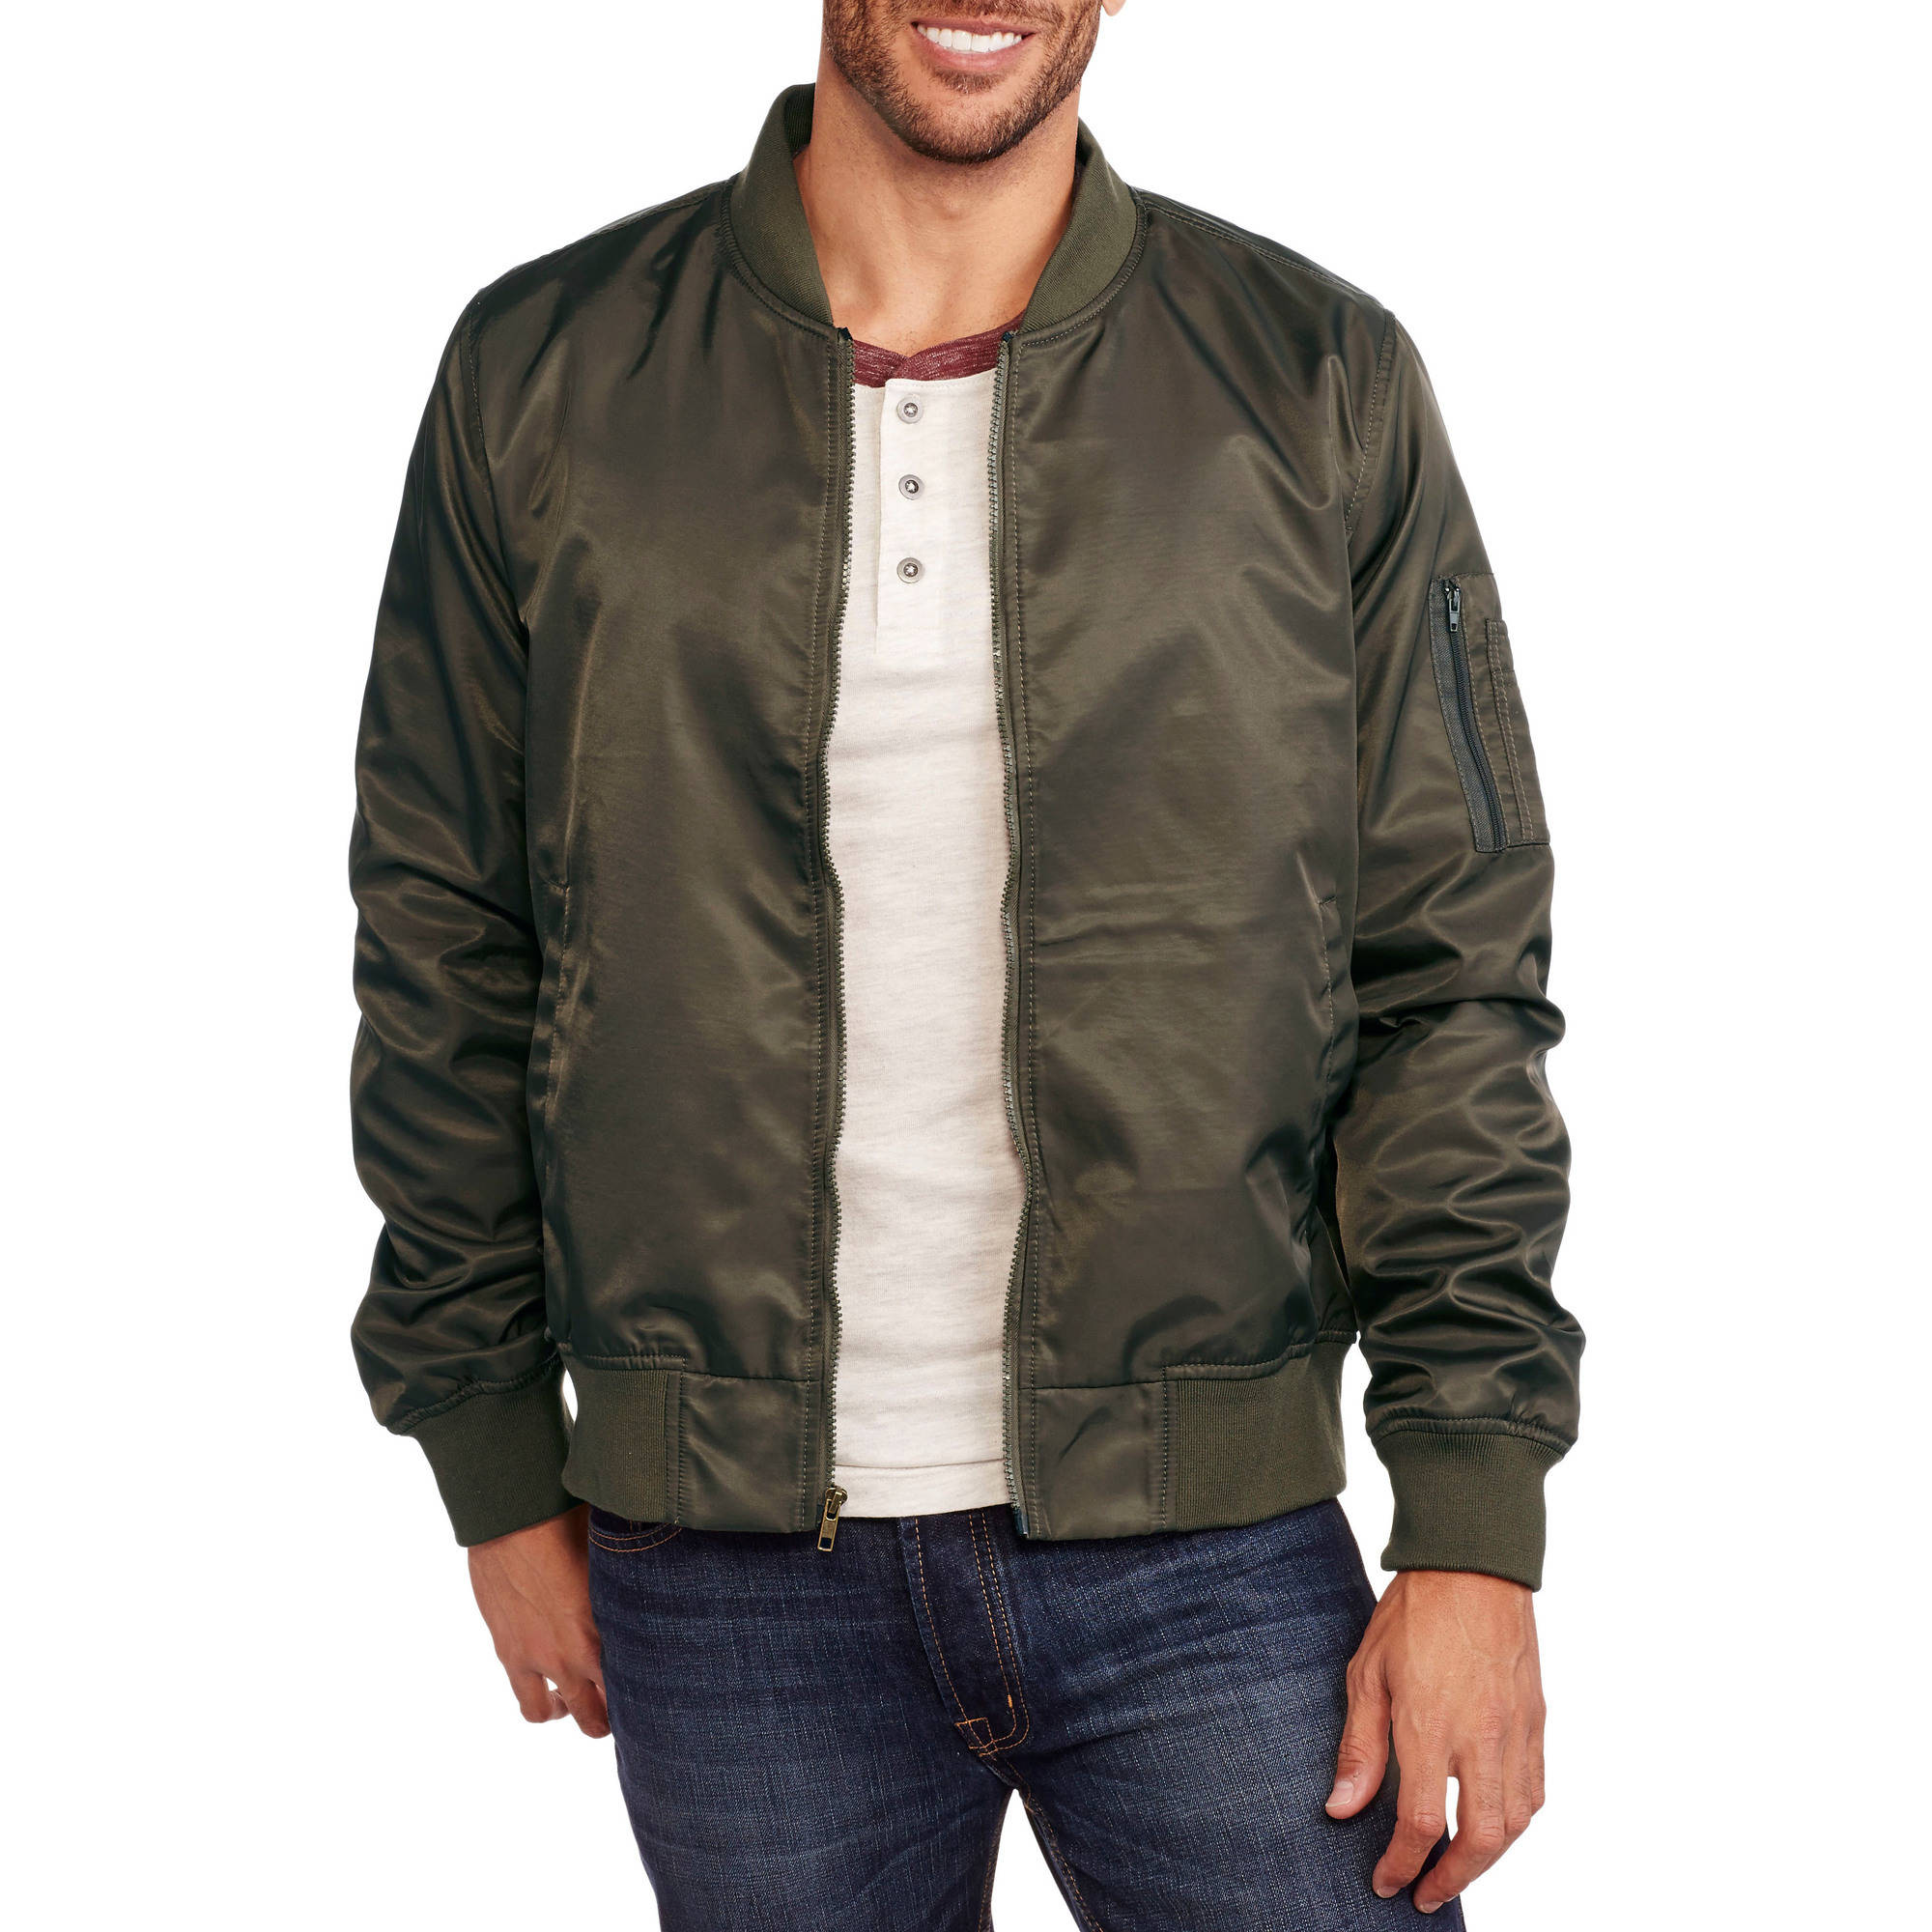 Men's Nylon Bomber Jacket - Walmart.com